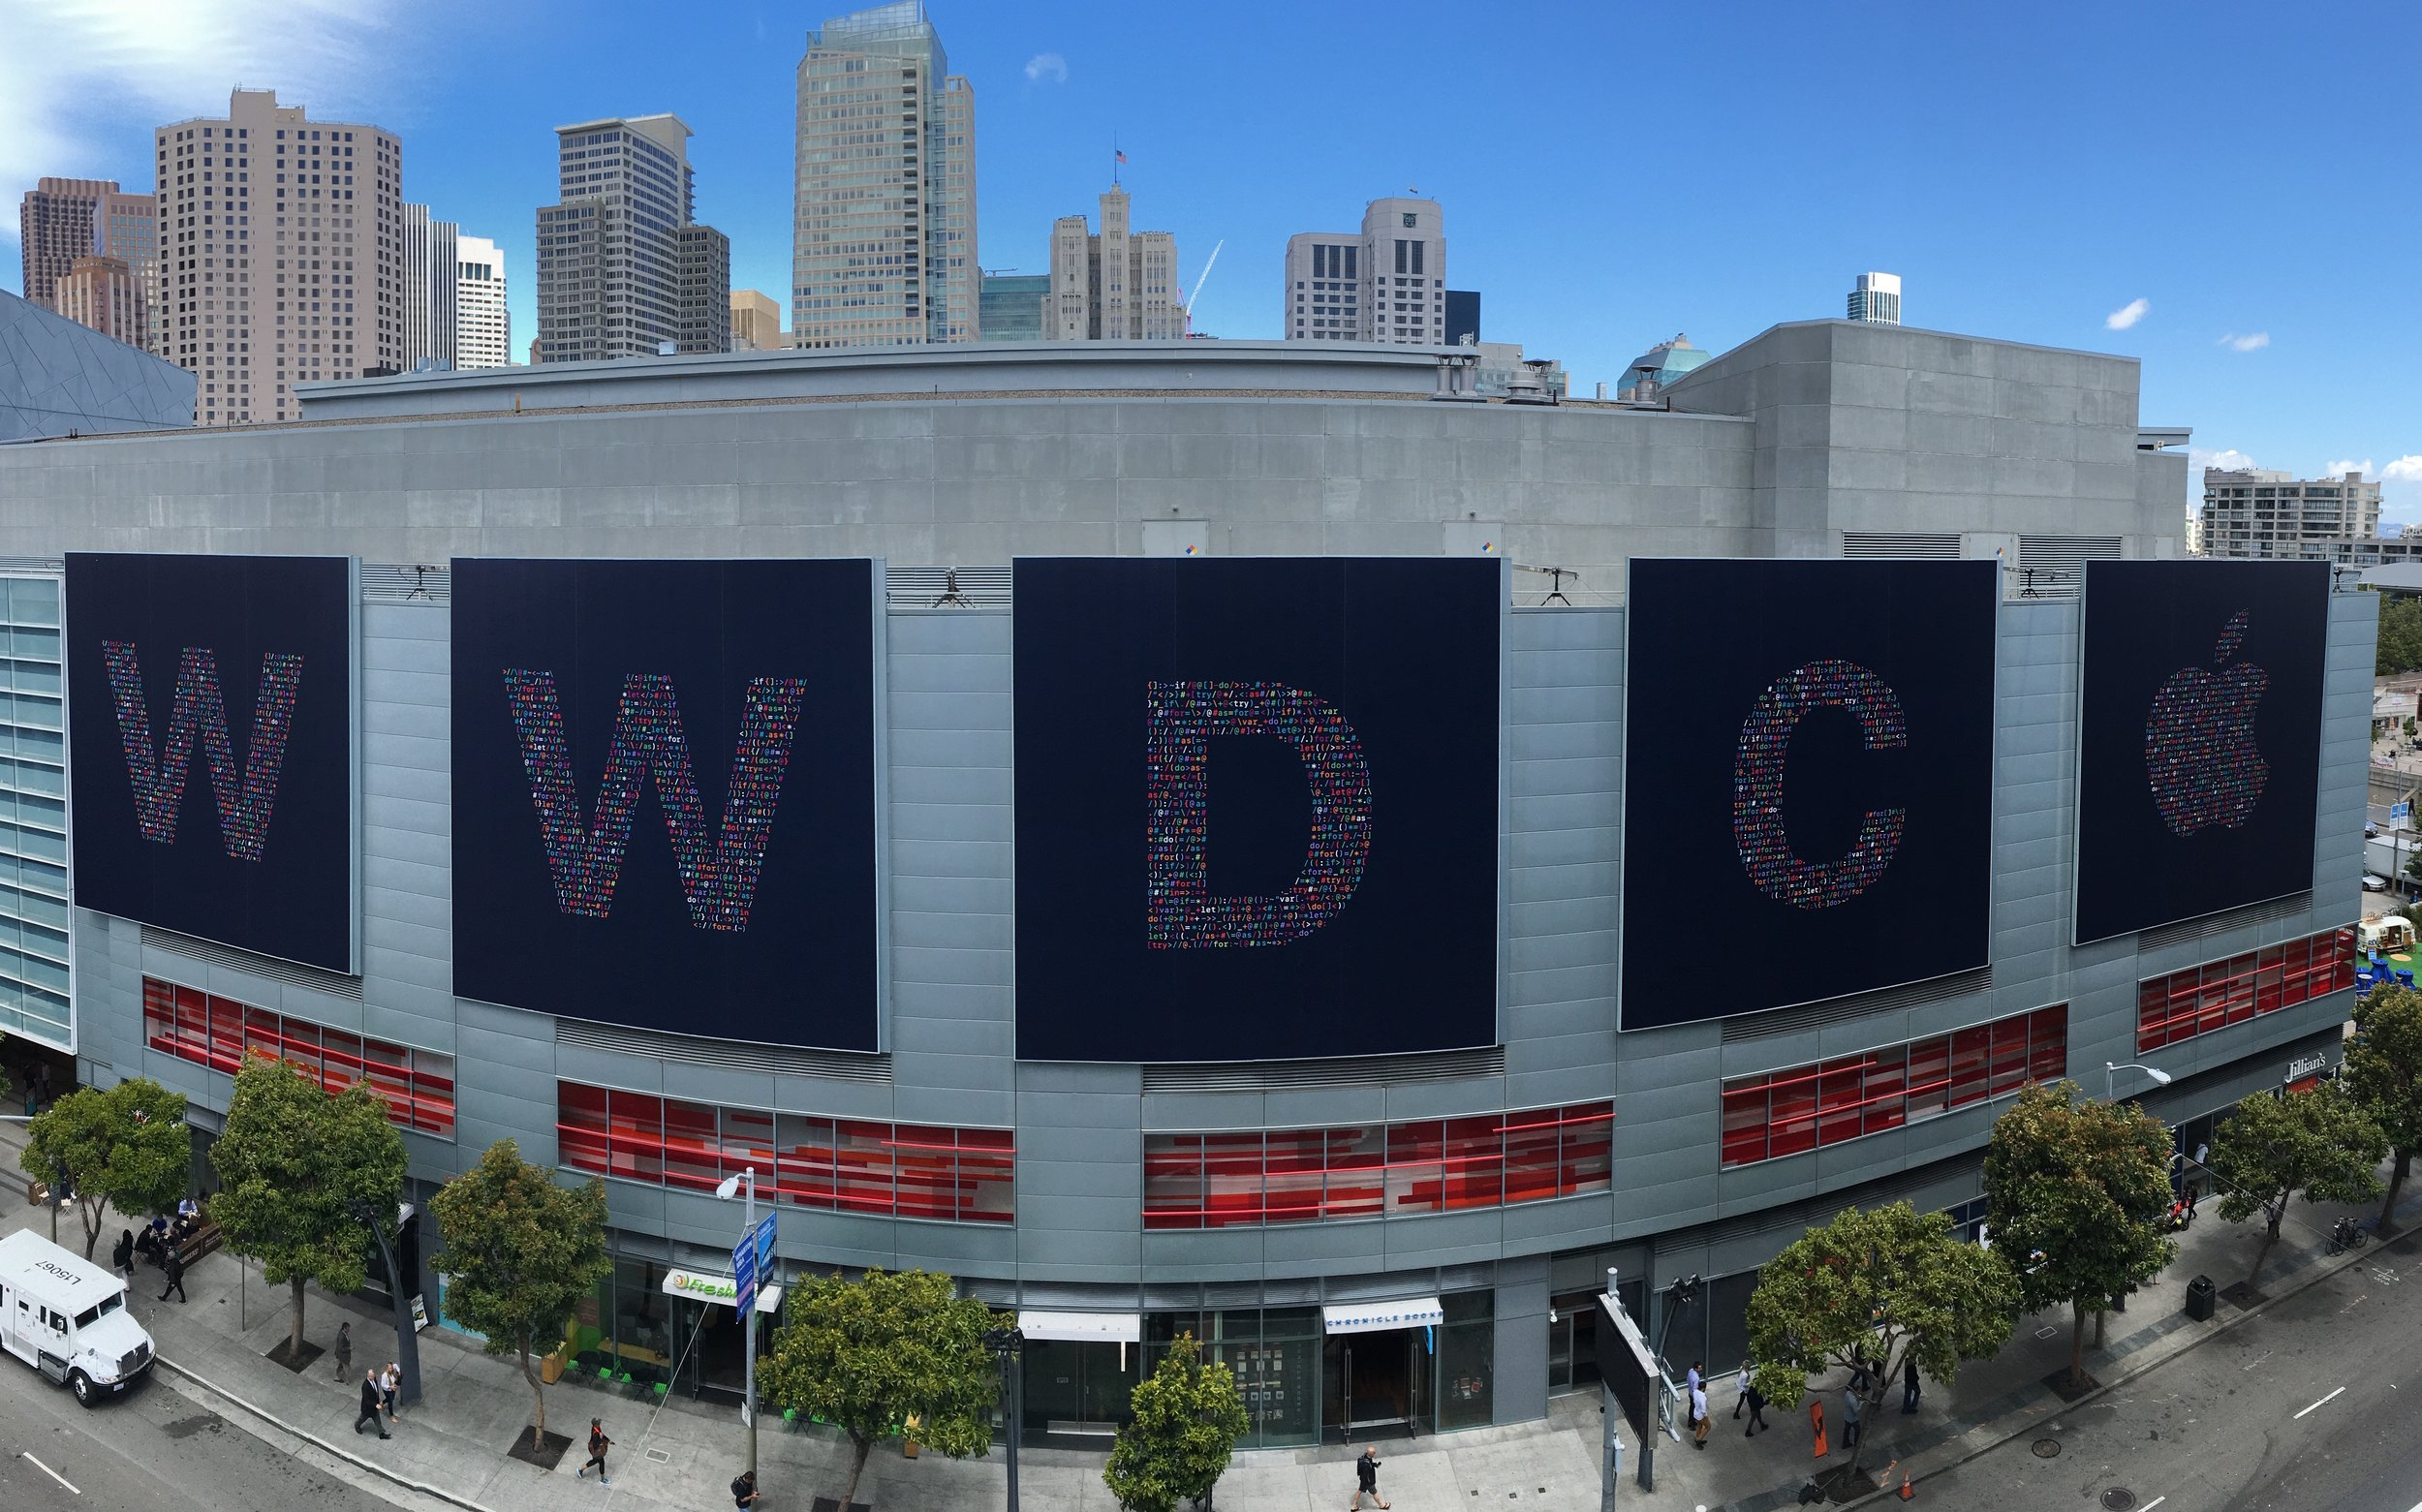 "photo credit: wka <a href=""http://www.flickr.com/photos/43675529@N00/27619502180"">WWDC Signs Pano</a> via <a href=""http://photopin.com"">photopin</a> <a href=""https://creativecommons.org/licenses/by-nc-sa/2.0/"">(license)</a>"